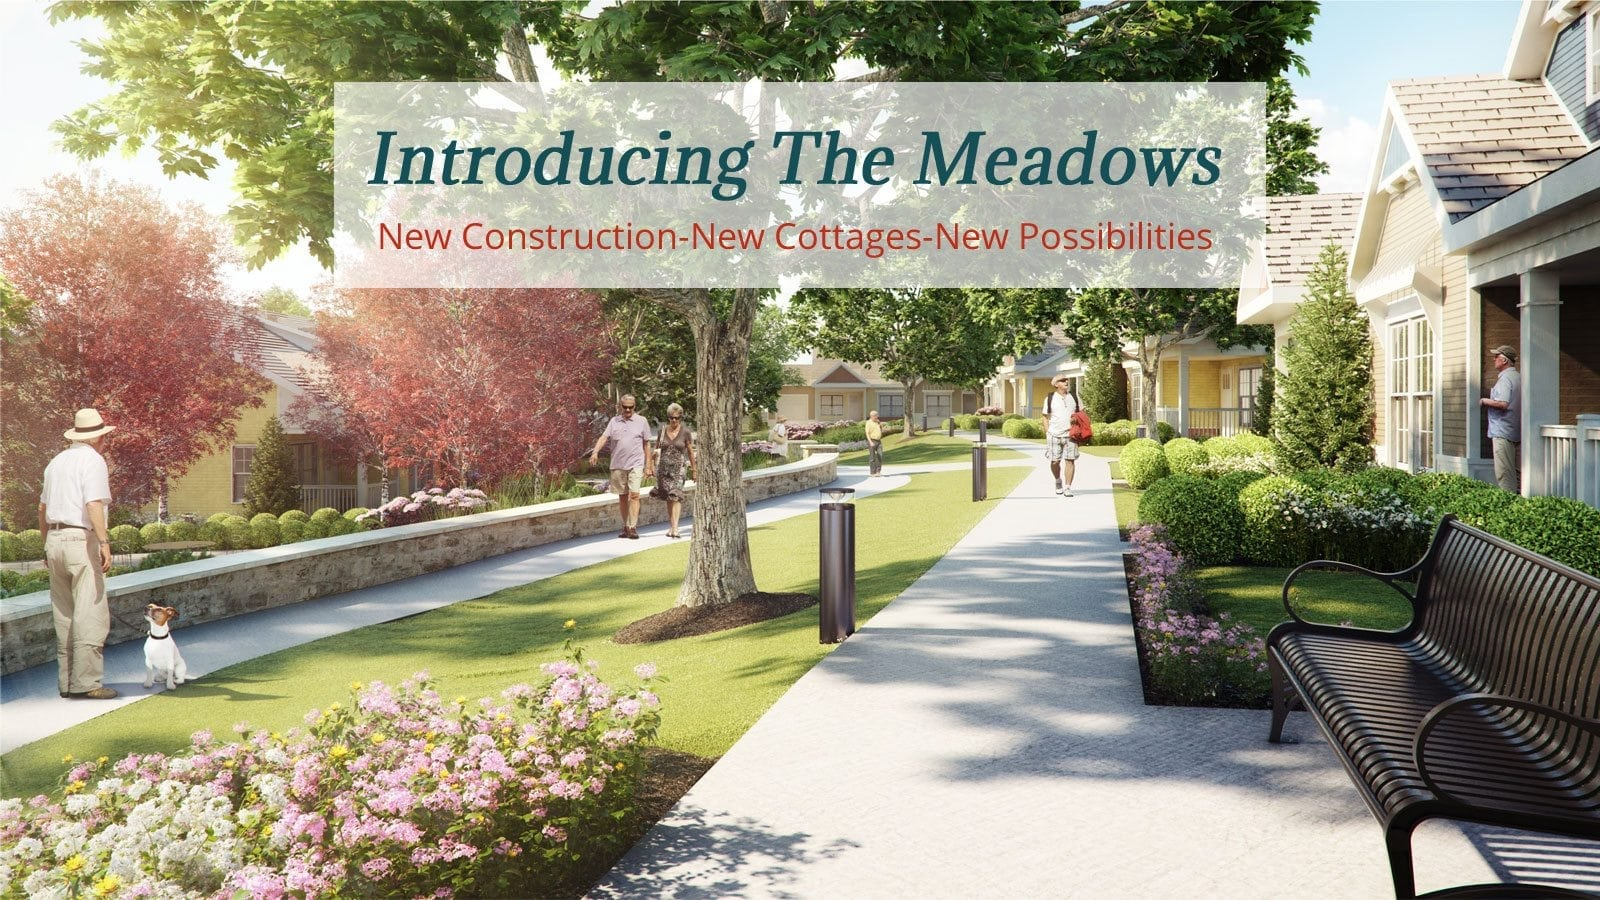 Introducing The Meadows!